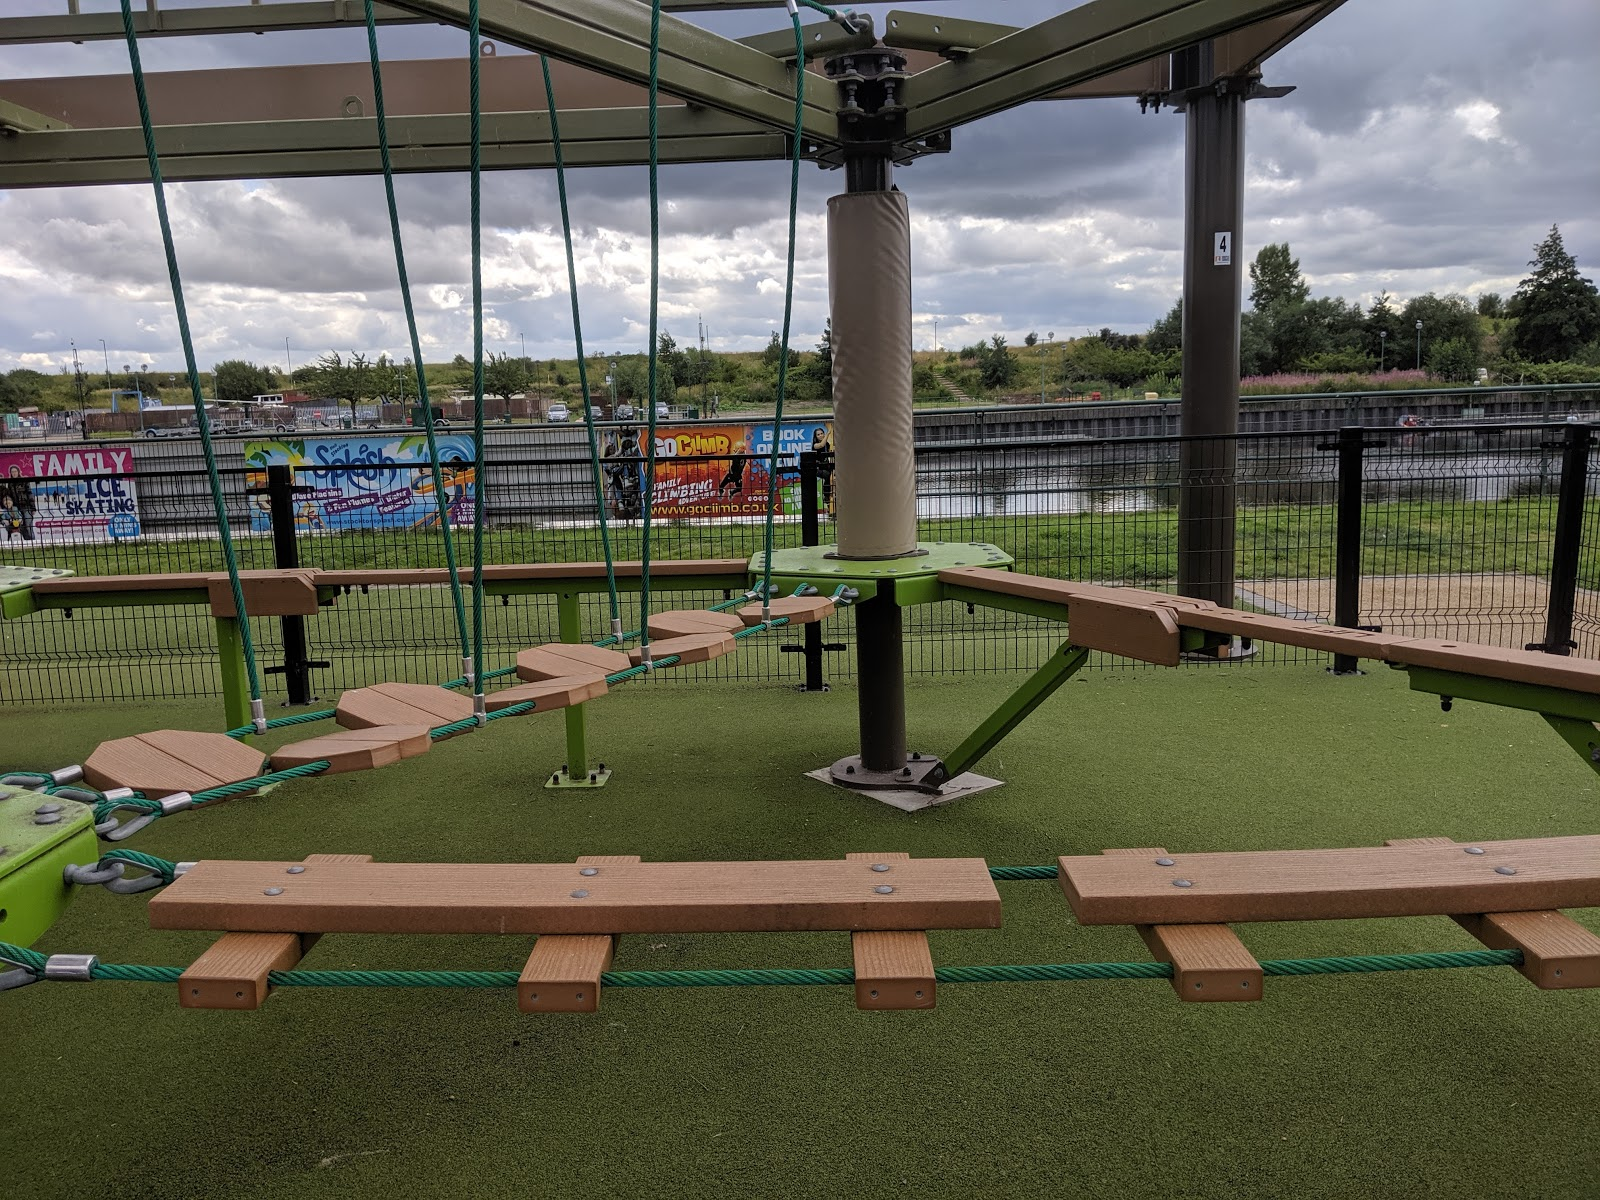 Air Trail Tees Barrage Review  - Air tykes course